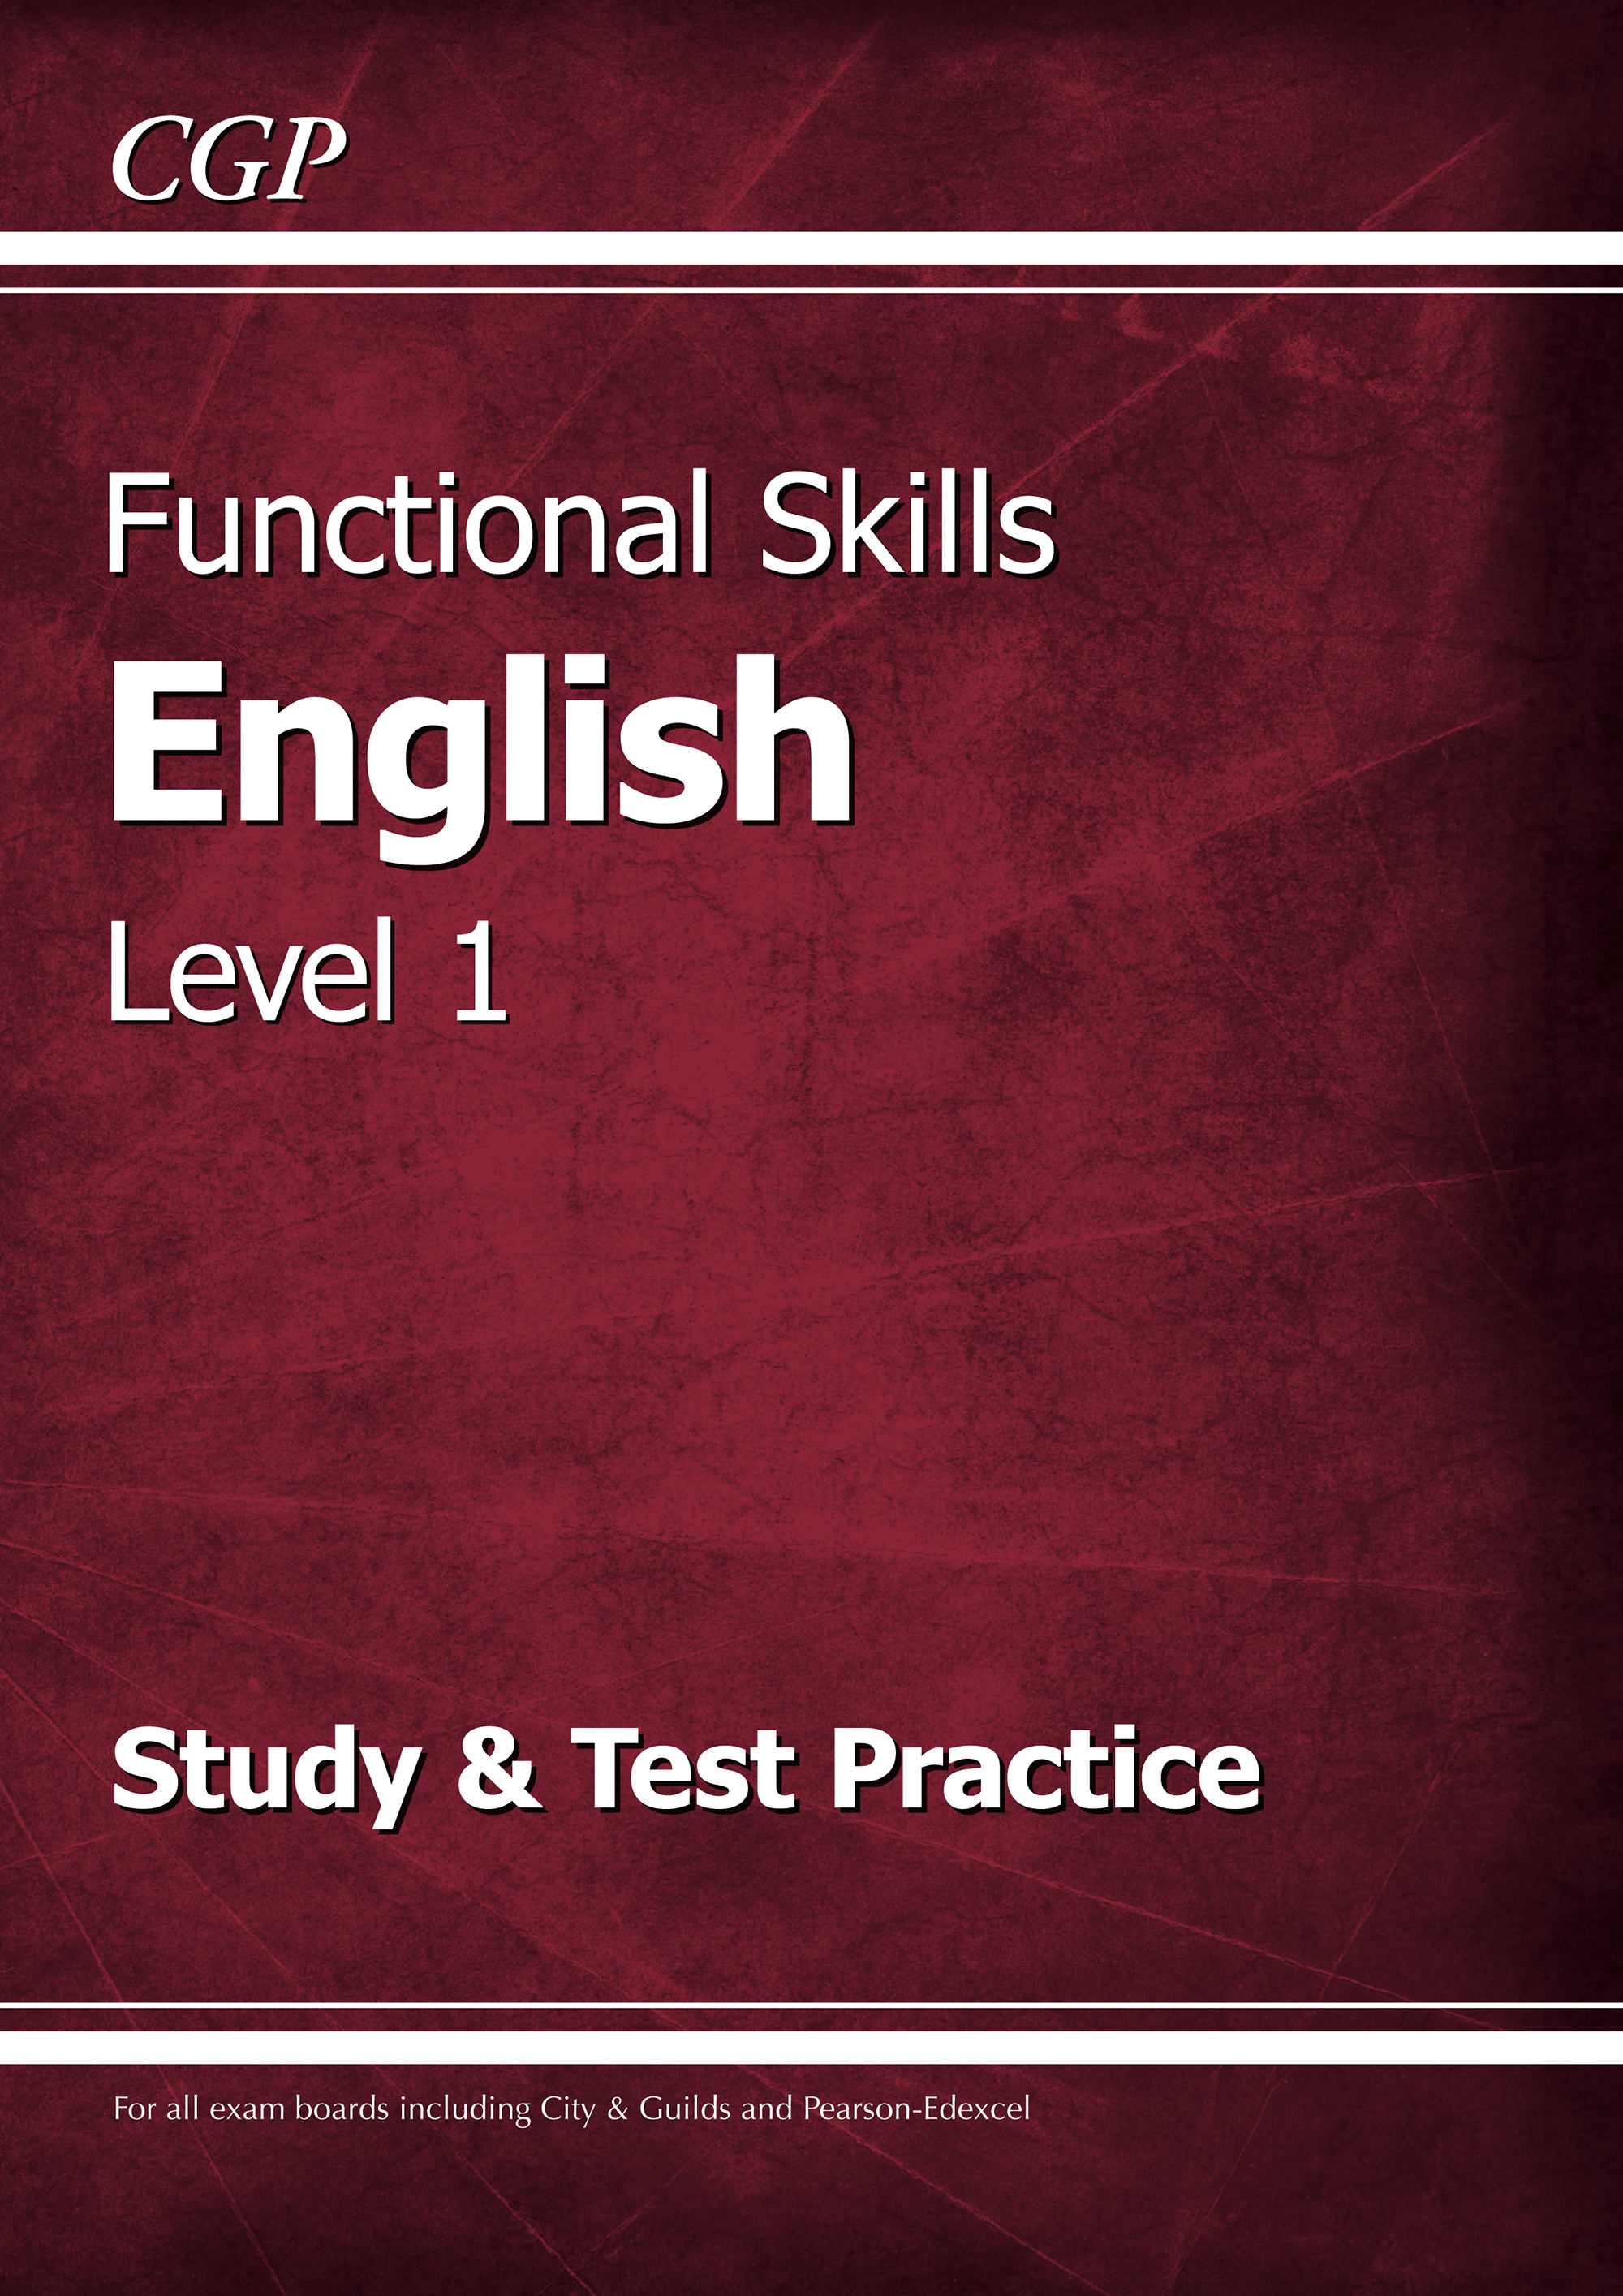 E1SRA2 - Functional Skills English Level 1 - Study & Test Practice